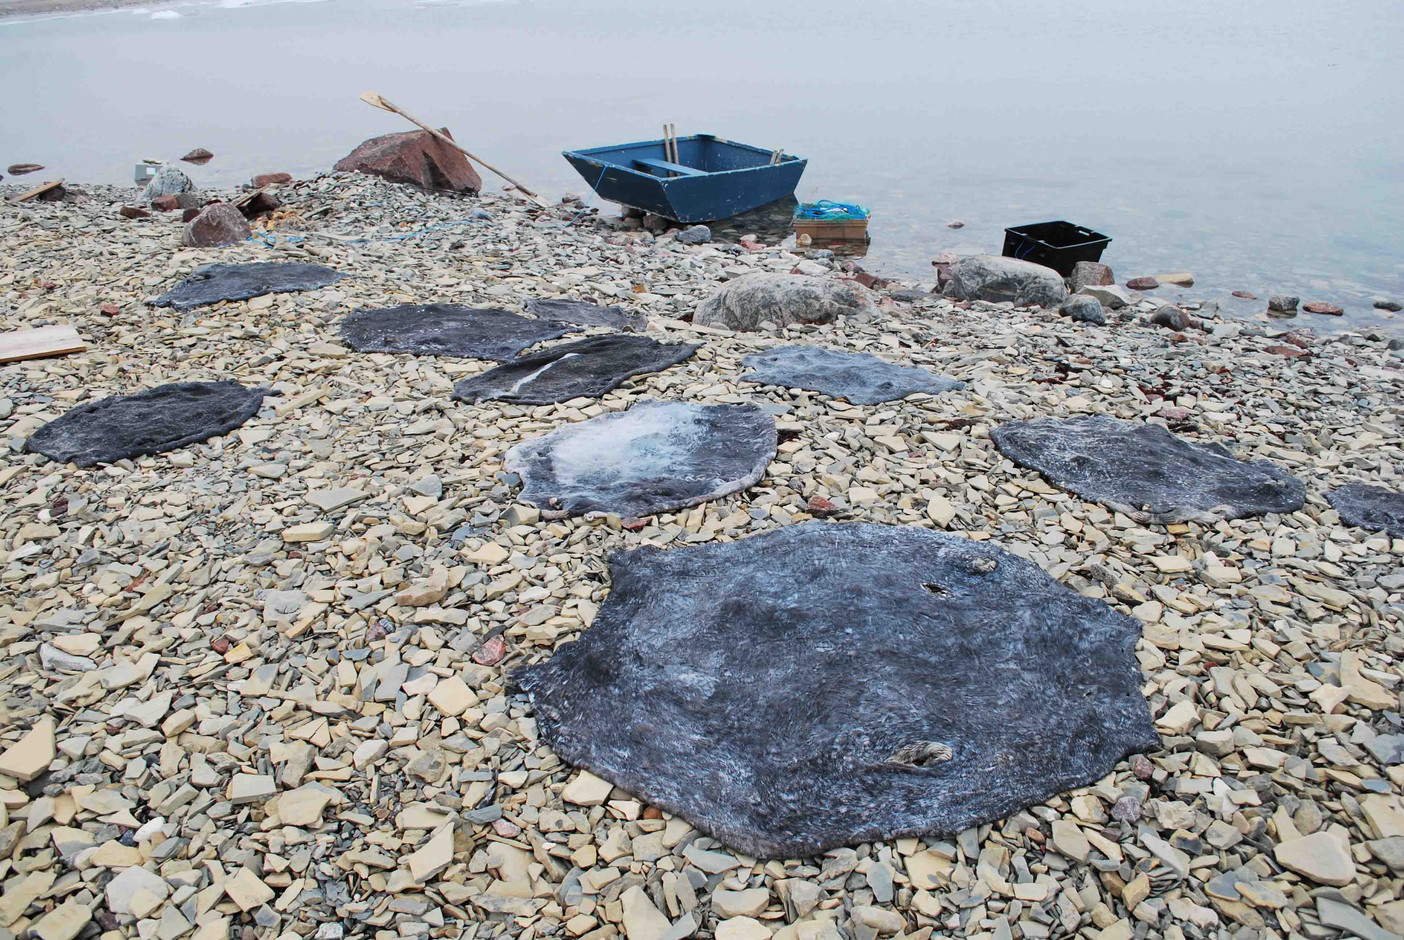 De-haired seal skins are laid out on a beach near Cambridge Bay to dry. Photo by Brendan Griebel.